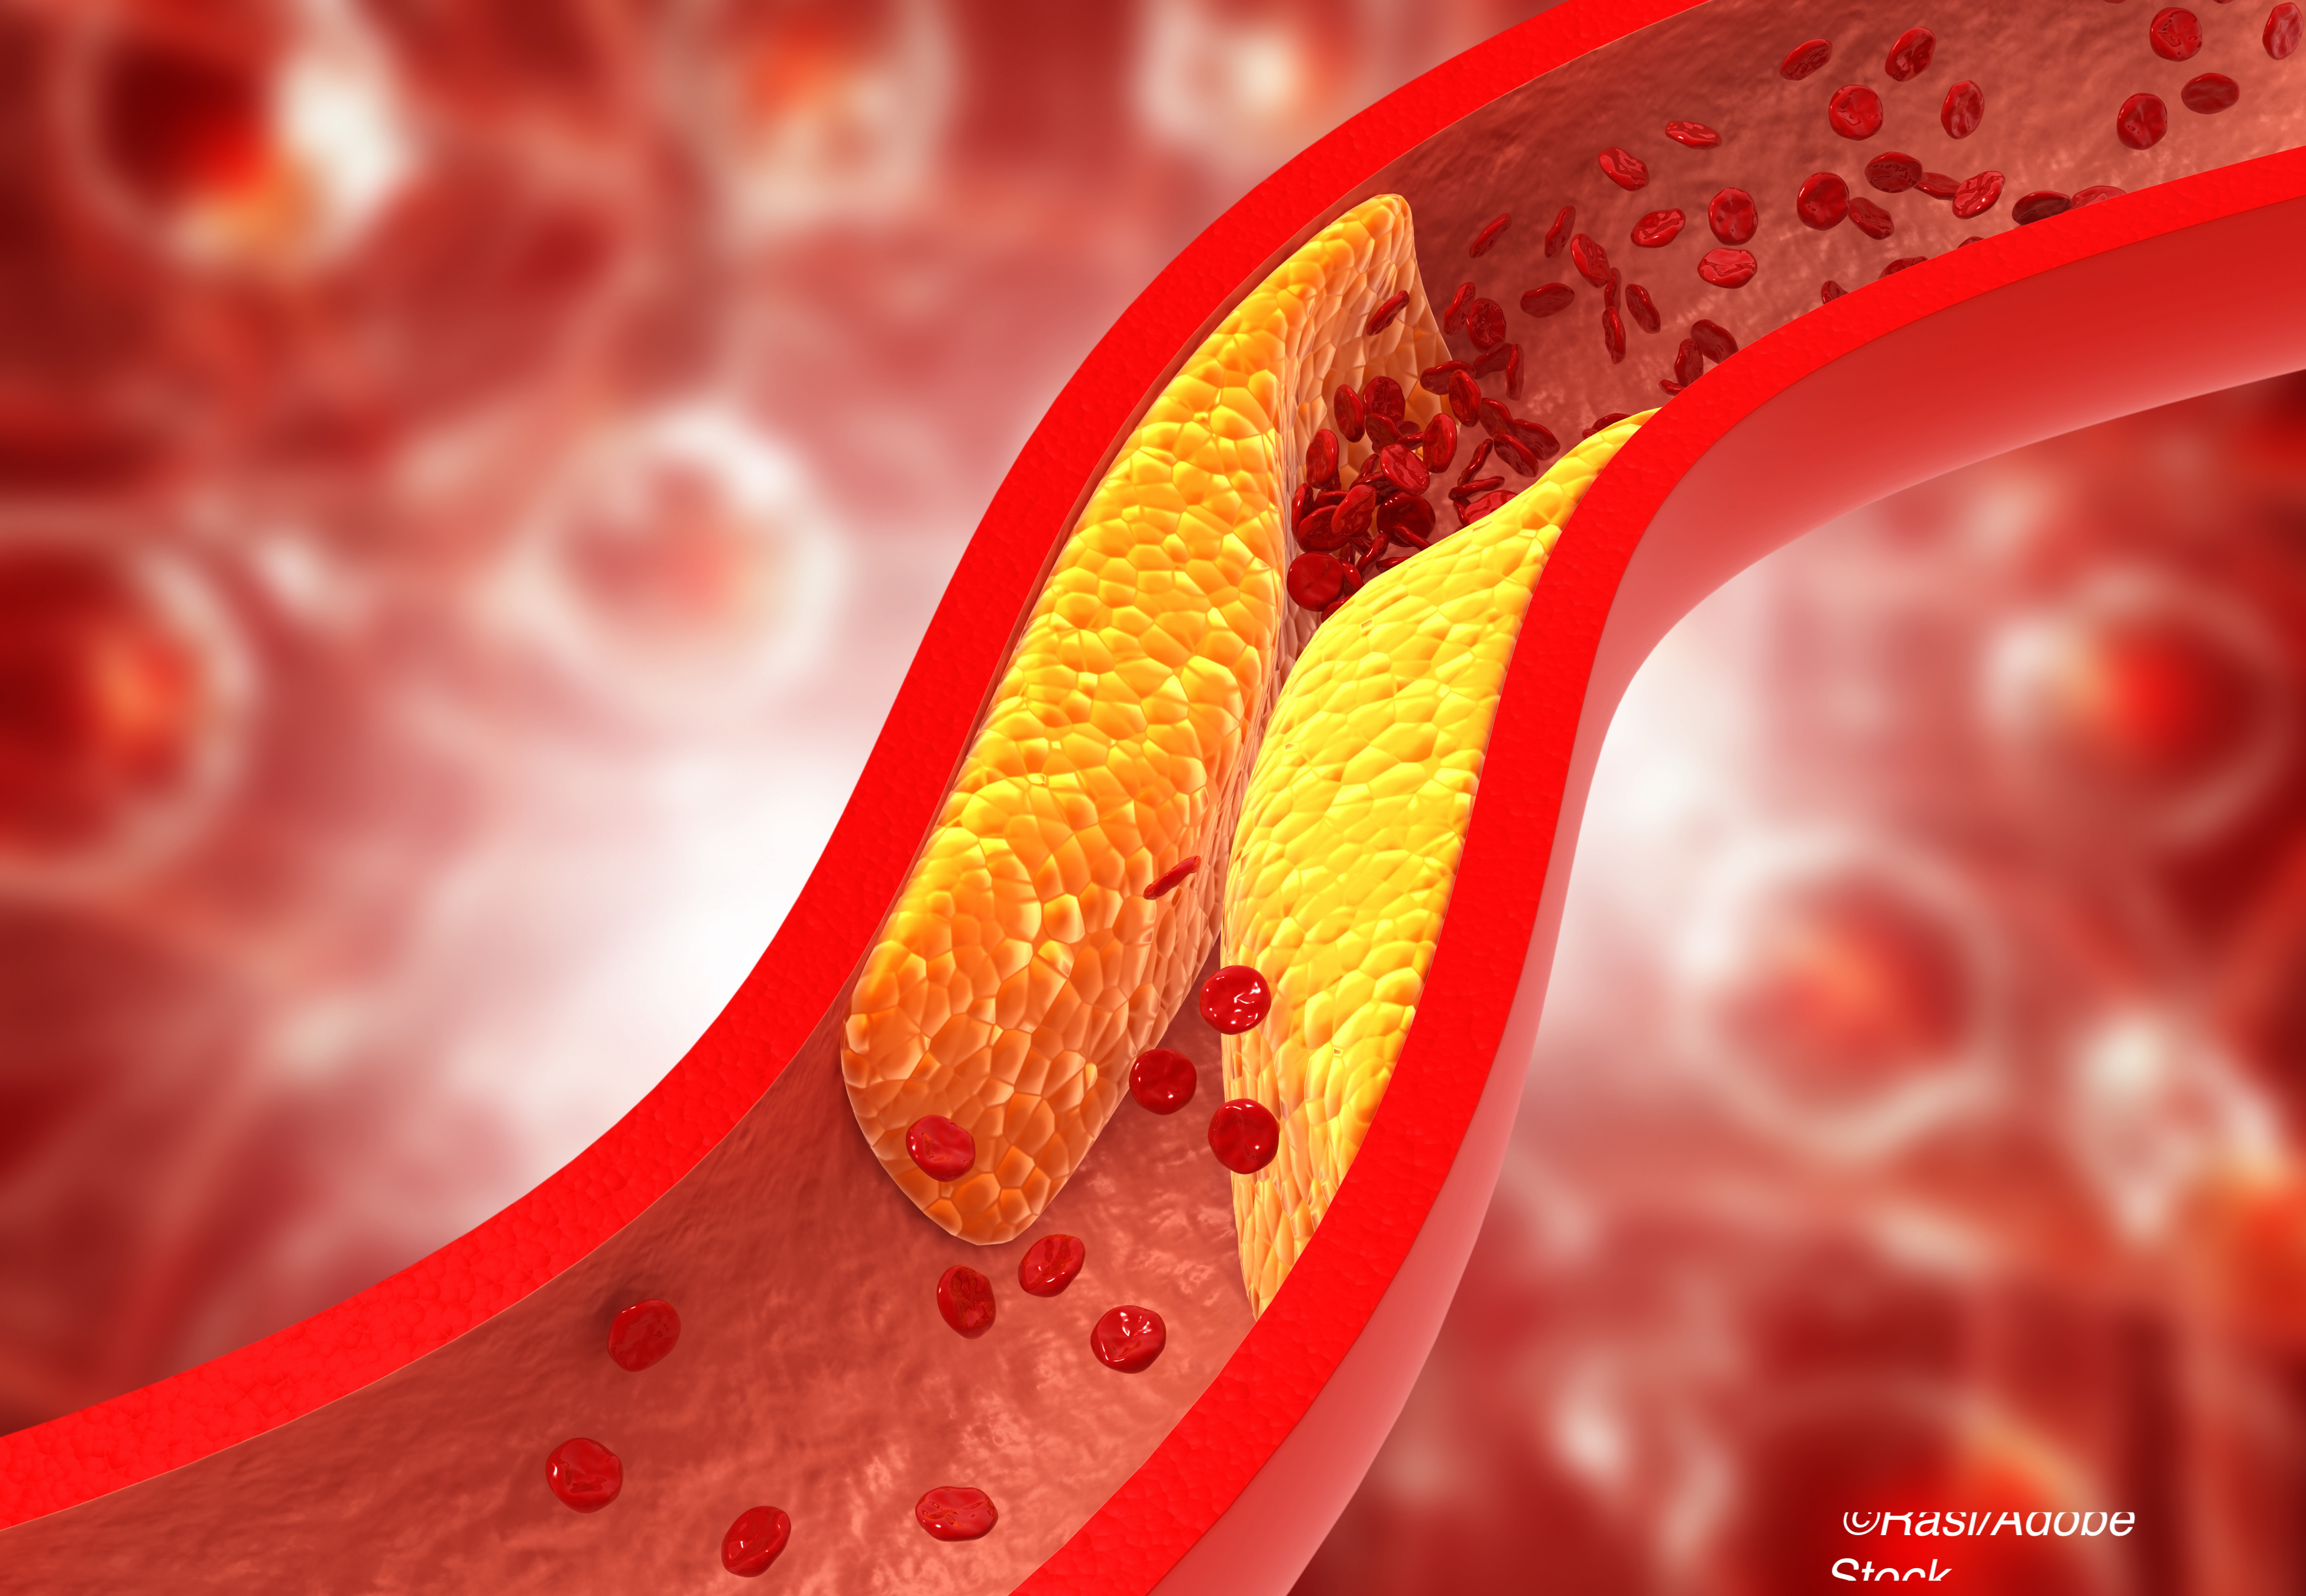 AHA: Silent CVD Common in 'Healthy' People